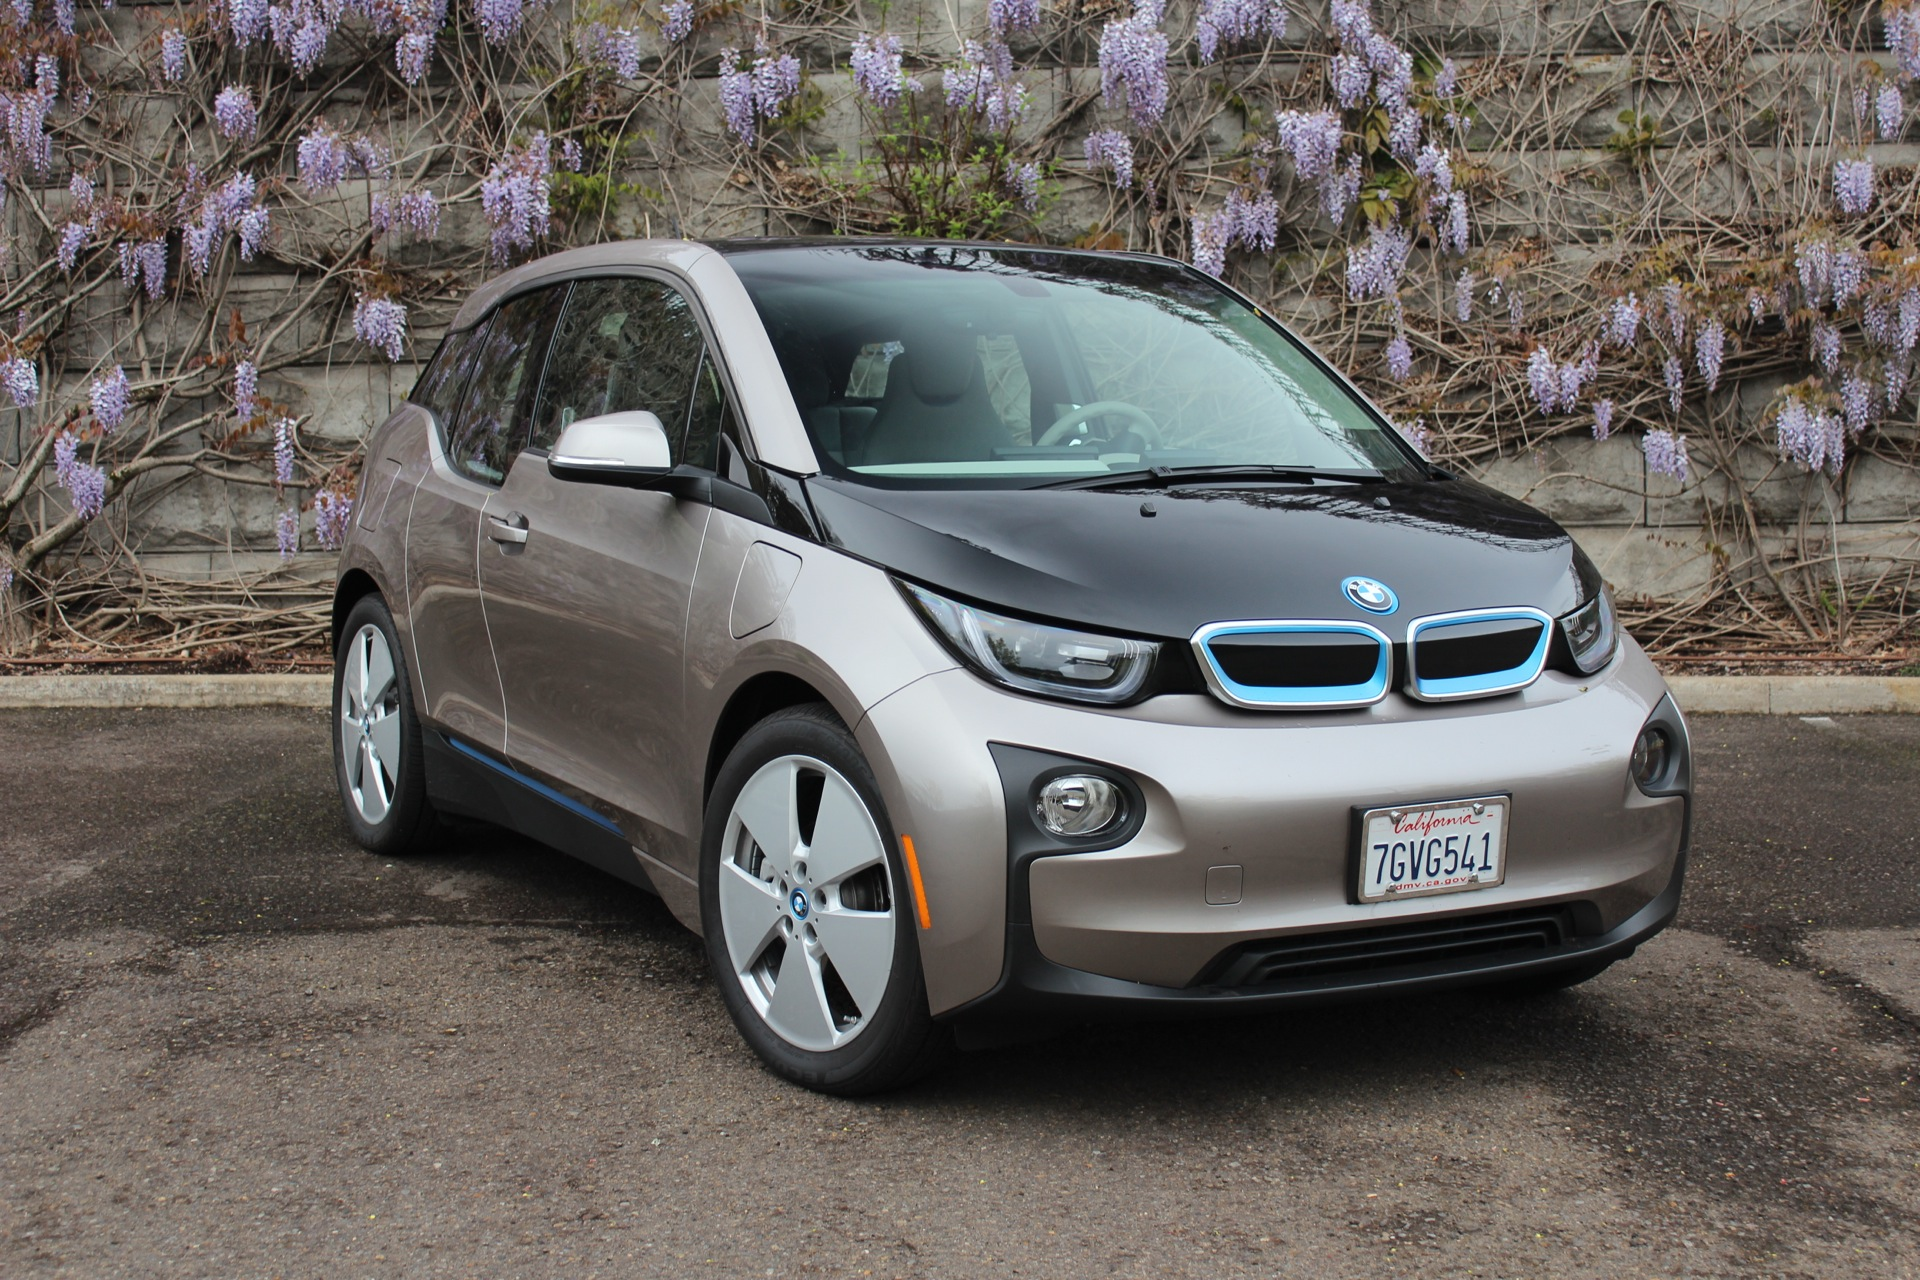 bmw i3 electric car quirk no am radio but why. Black Bedroom Furniture Sets. Home Design Ideas